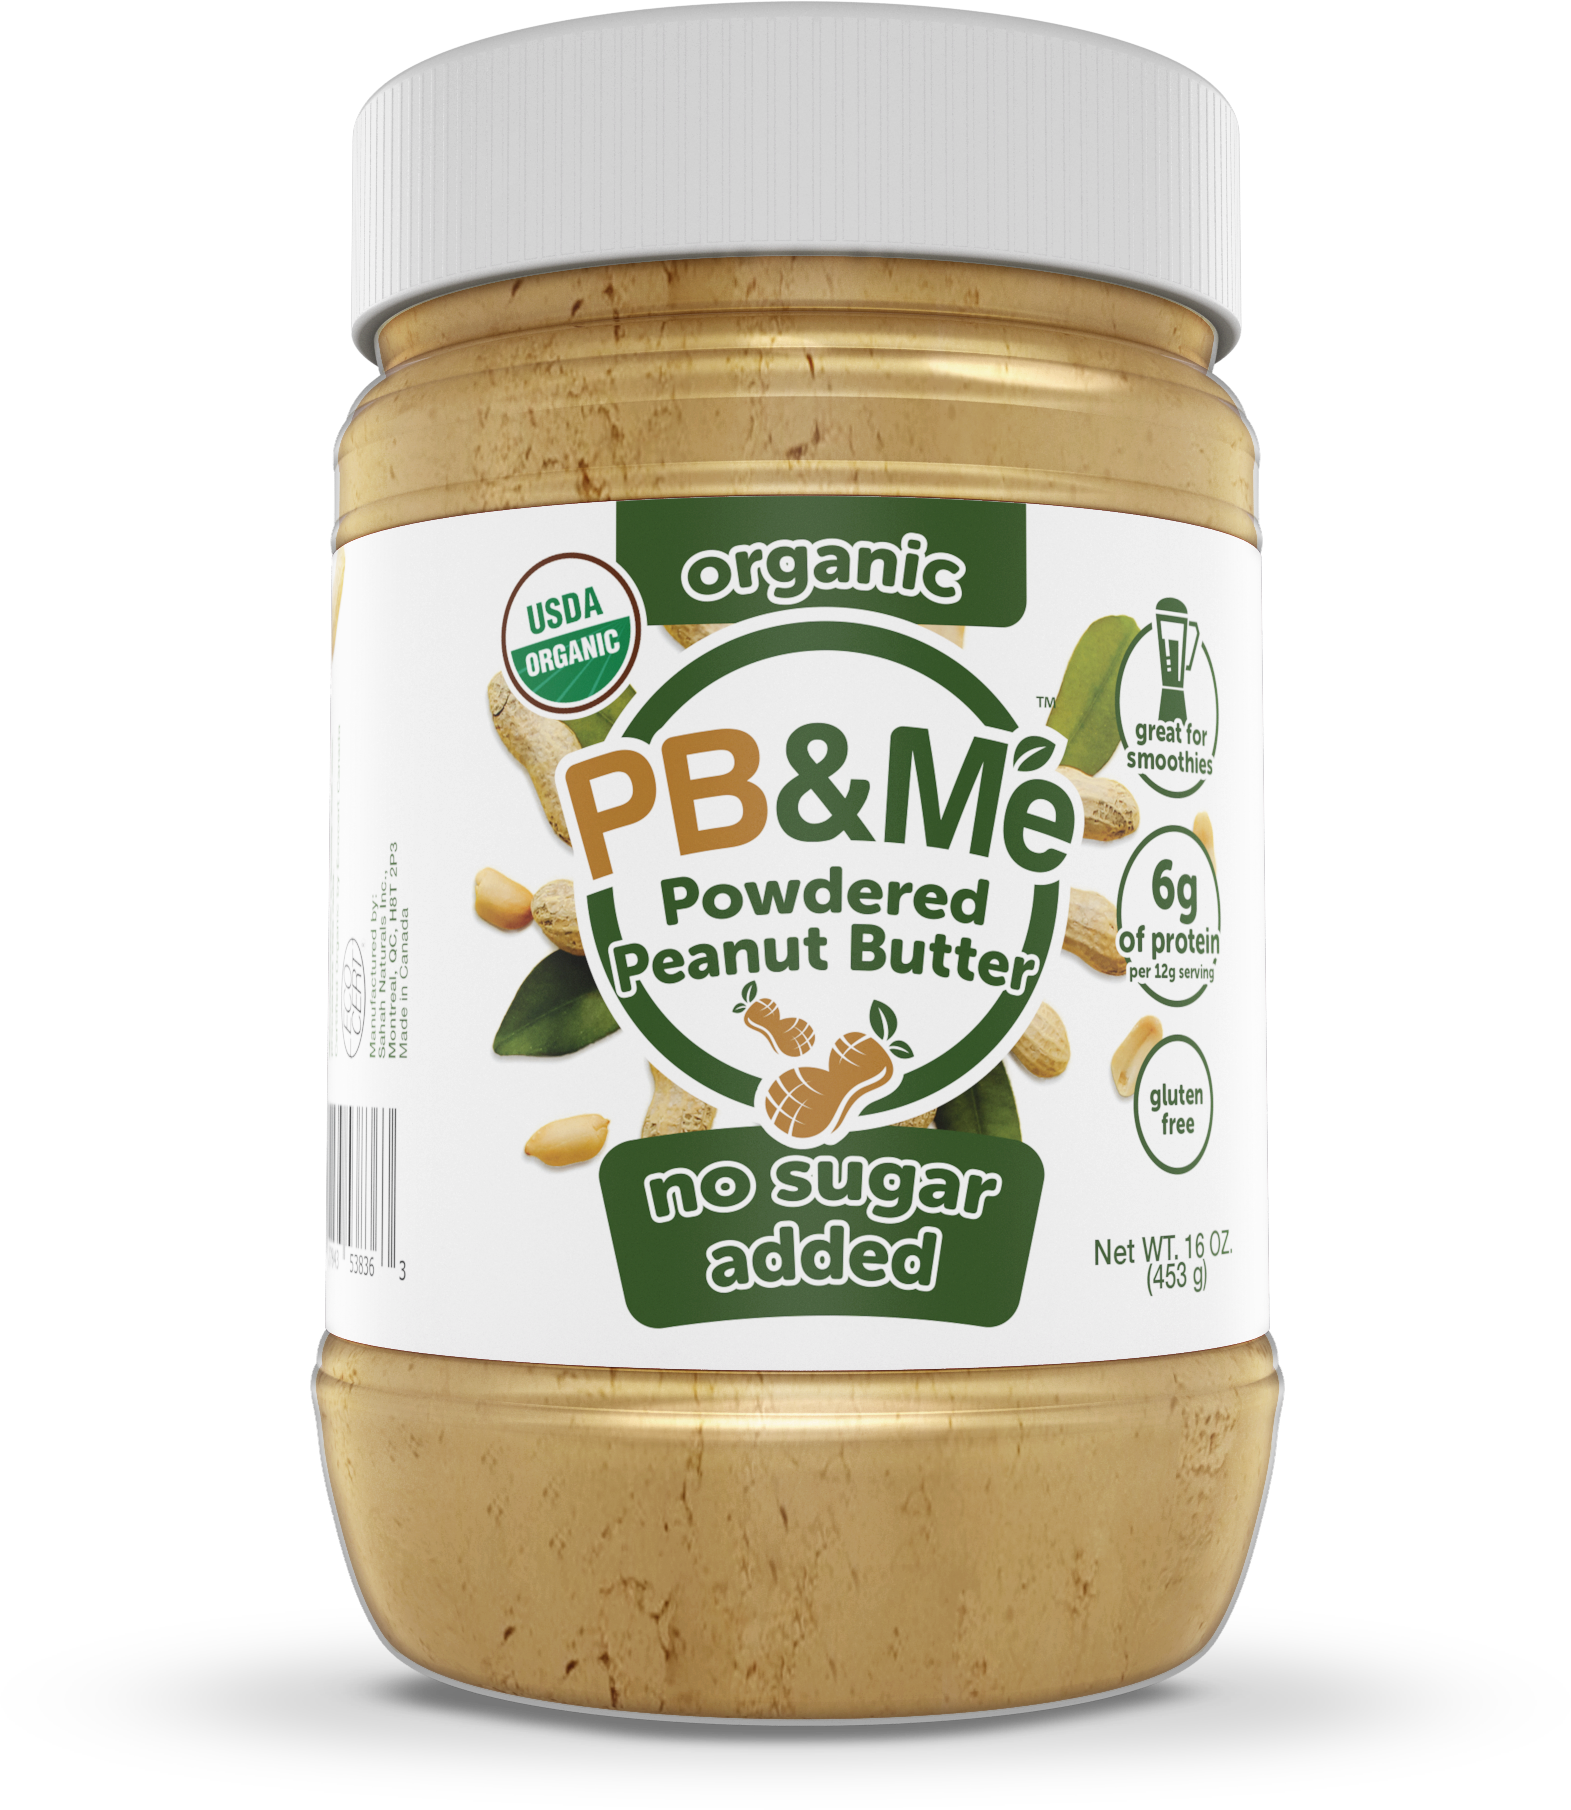 Organic Powdered Peanut Butter - No Sugar Added (1LB)